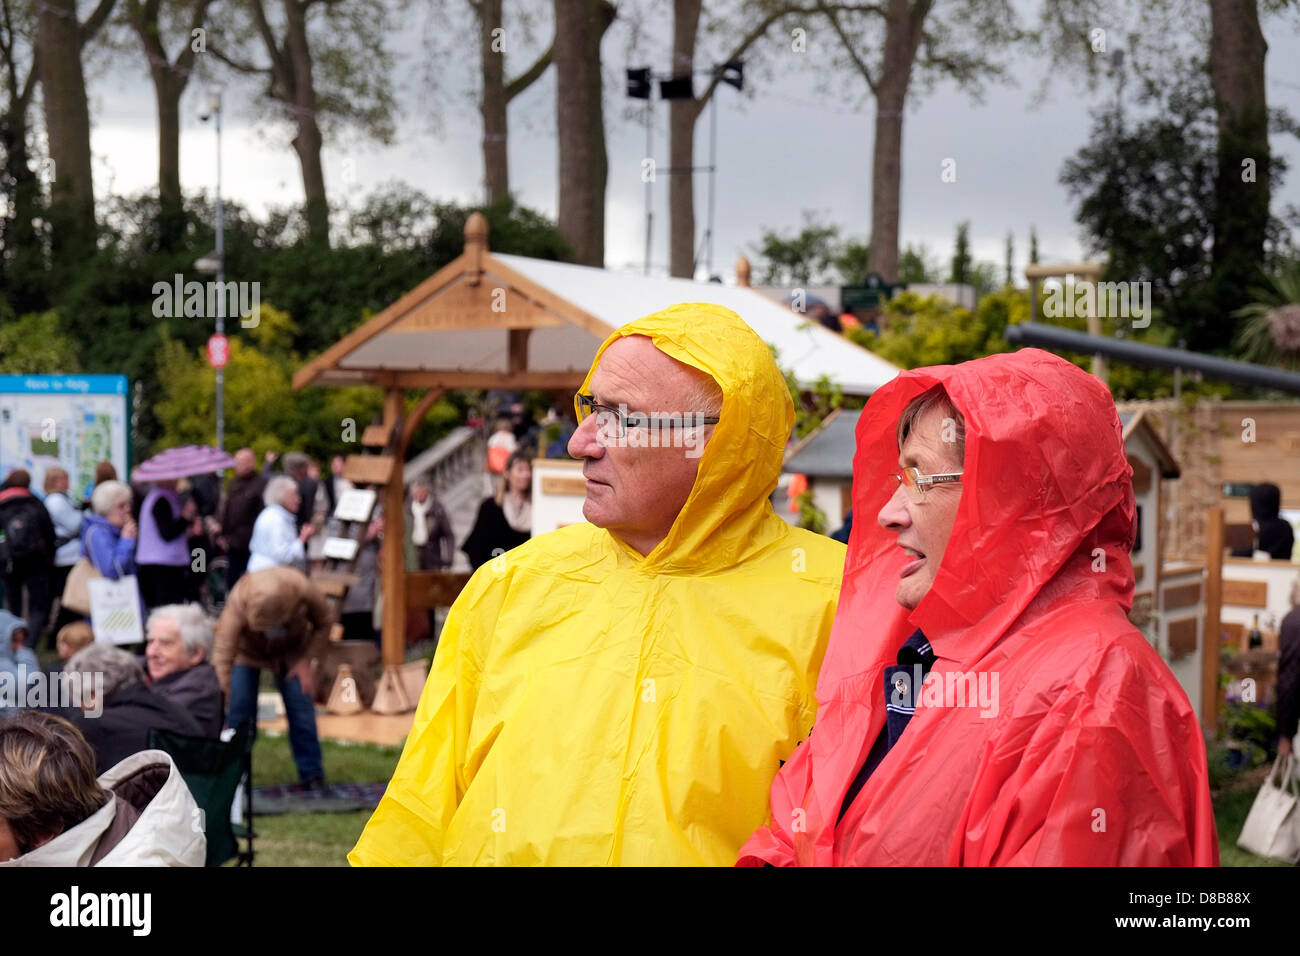 London, UK. 24th May 2013. Members of the public brave the wet and cold conditions at the centenary Chelsea Flower - Stock Image